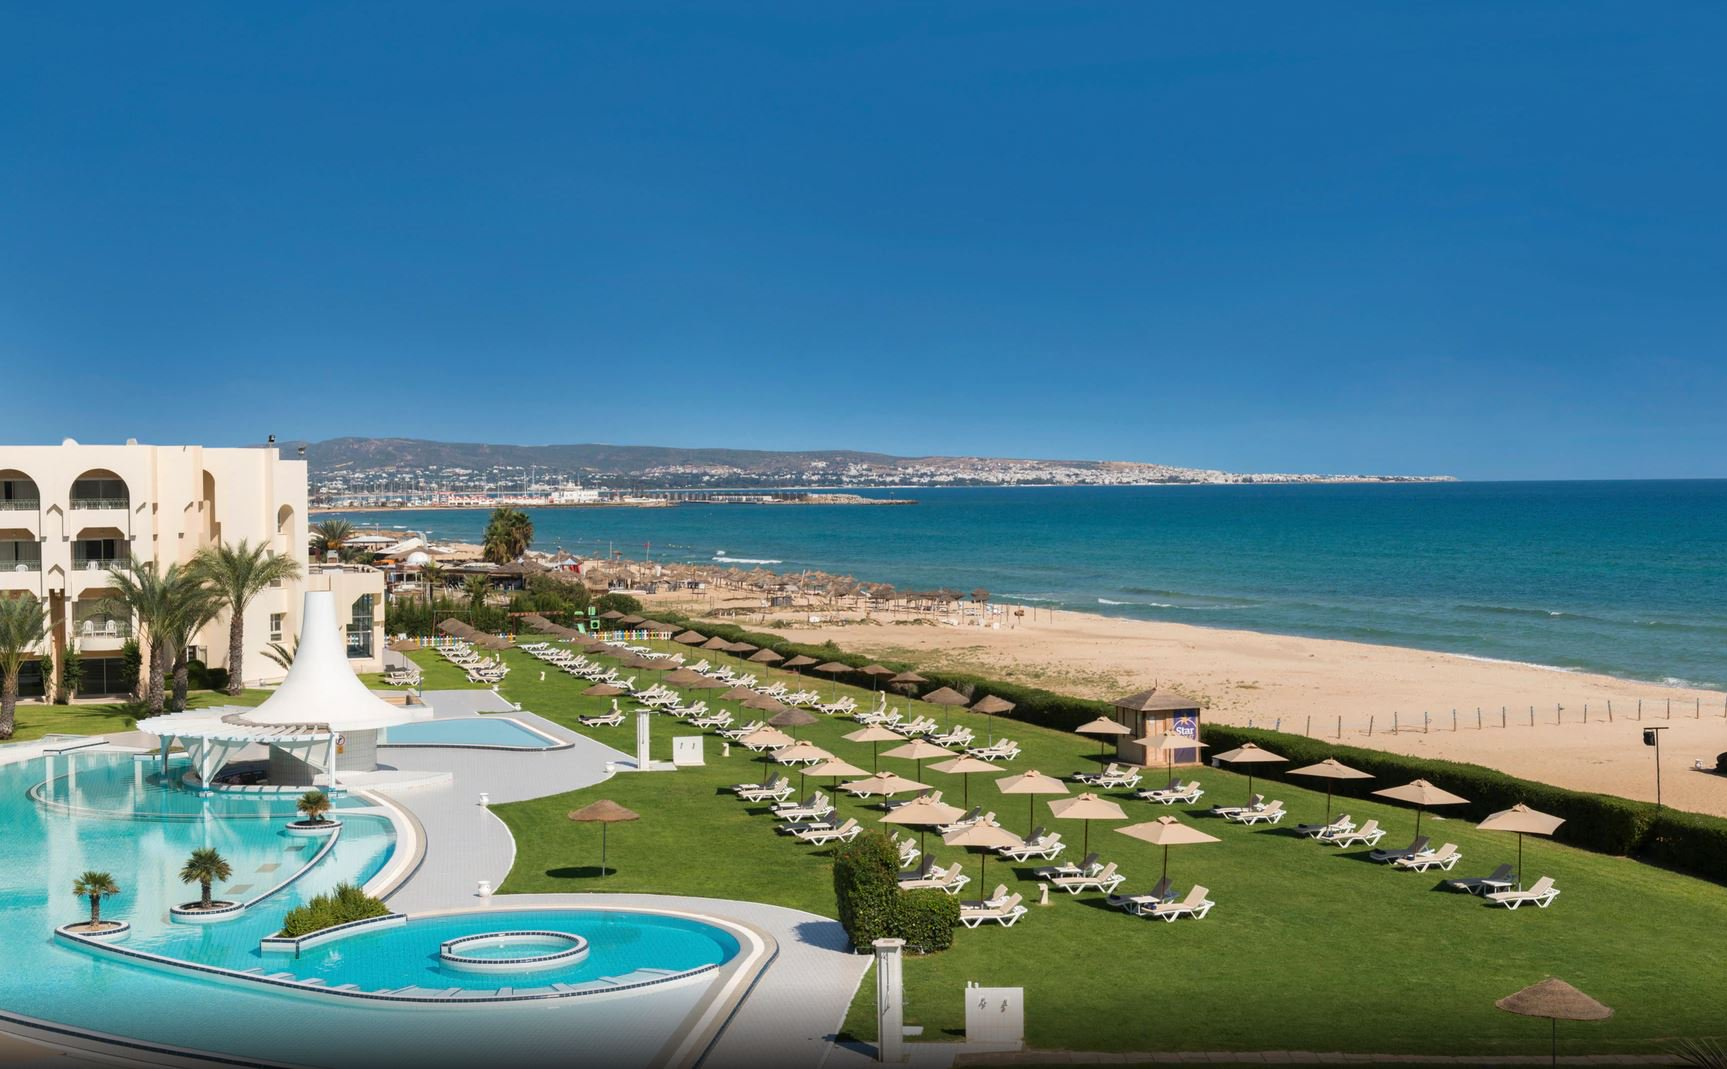 Tunisia: 4 Star Iberostar Award Winning All Inclusive Holiday